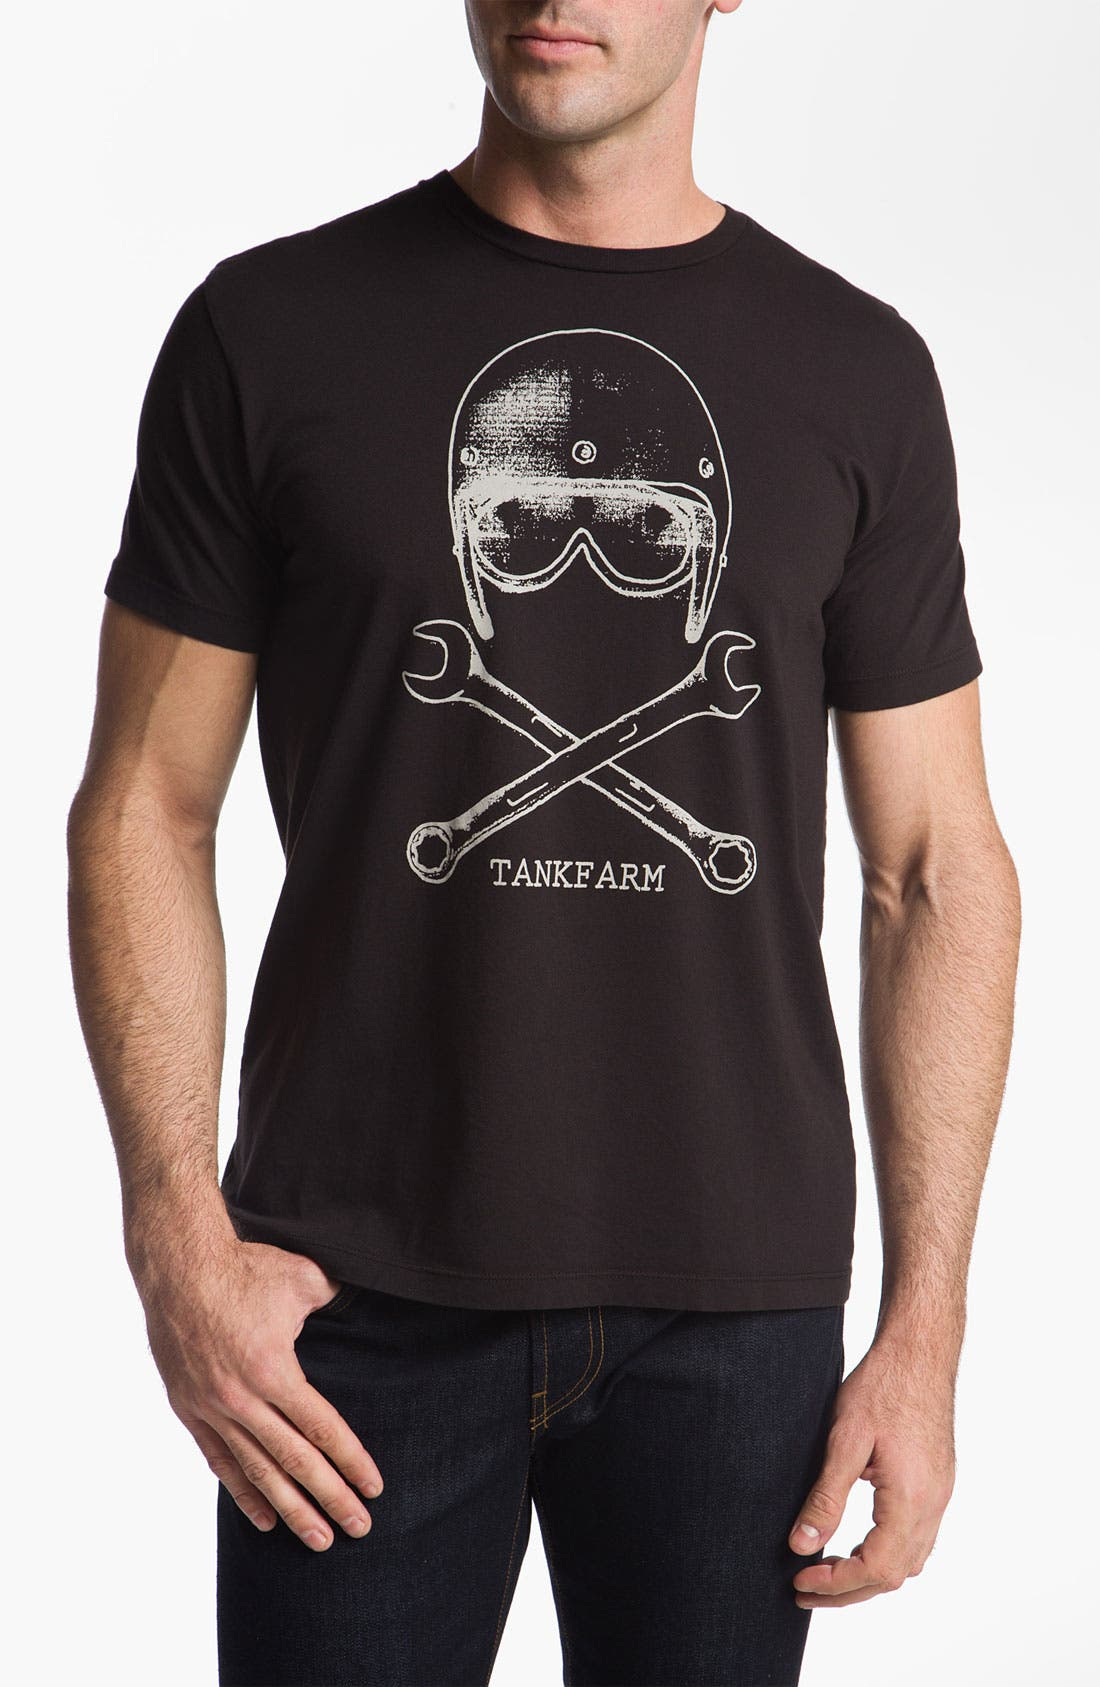 Alternate Image 1 Selected - Tankfarm 'Skull & Wrench' T-Shirt